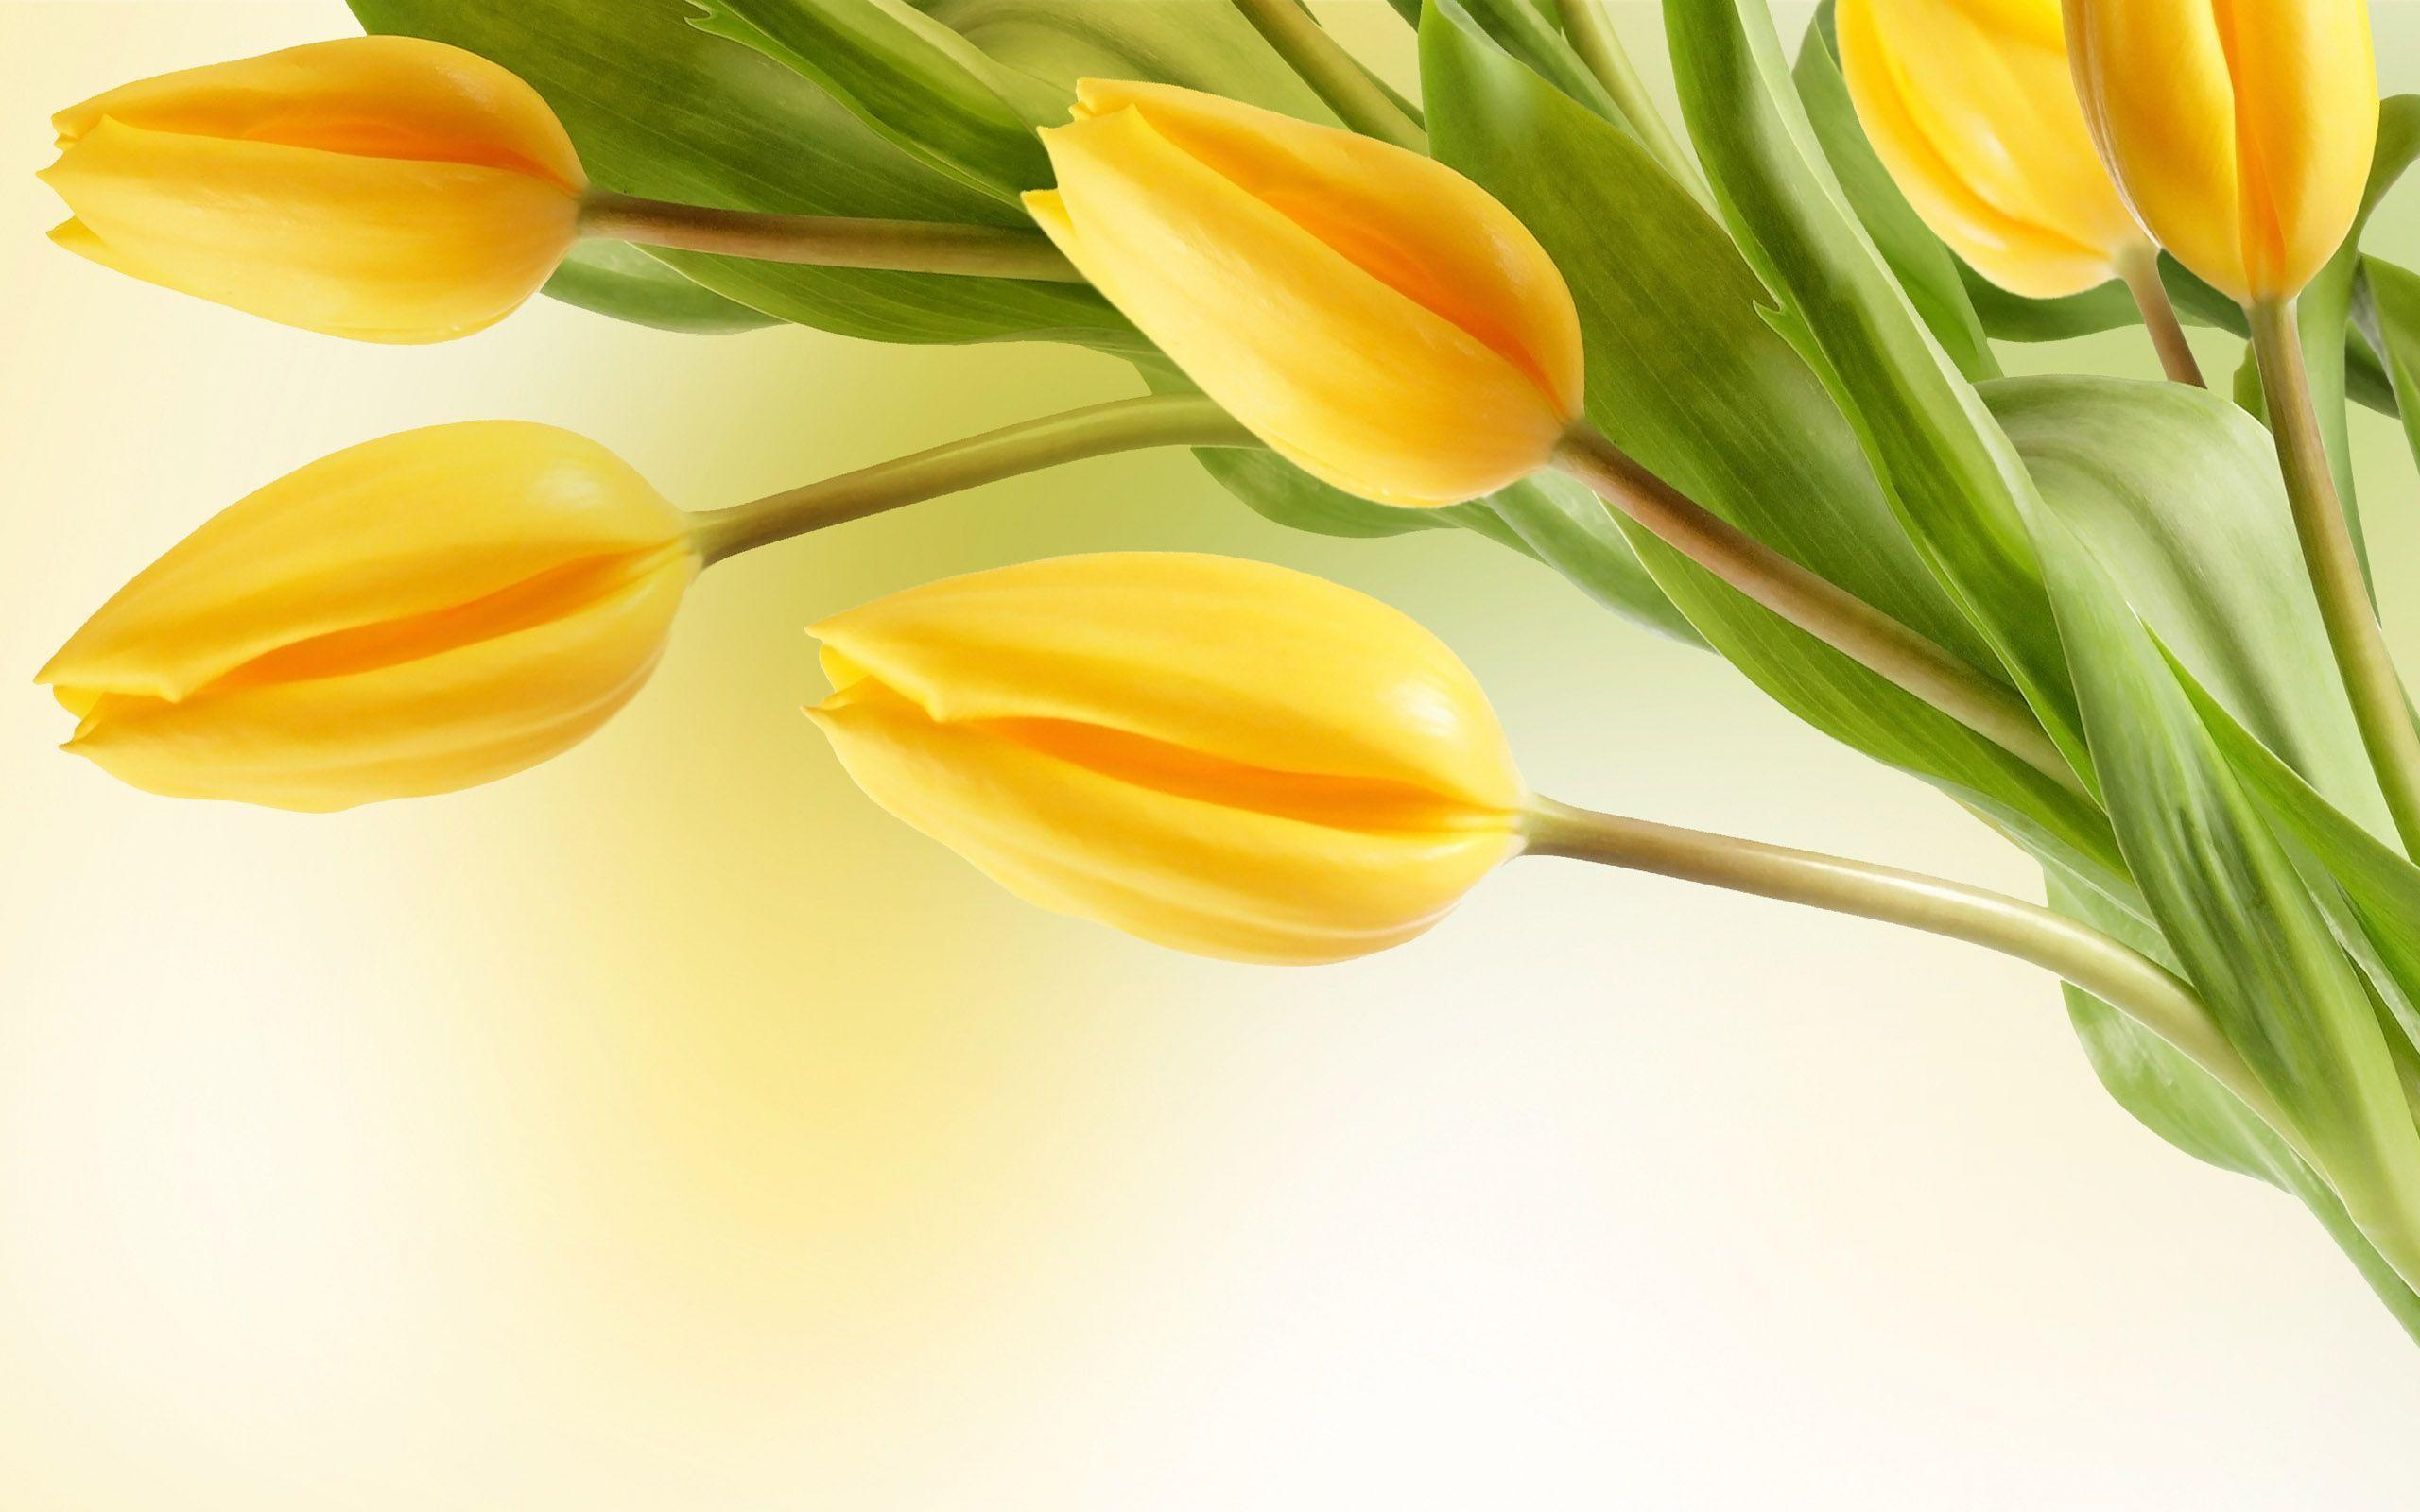 wallpapers for tulip flower background images